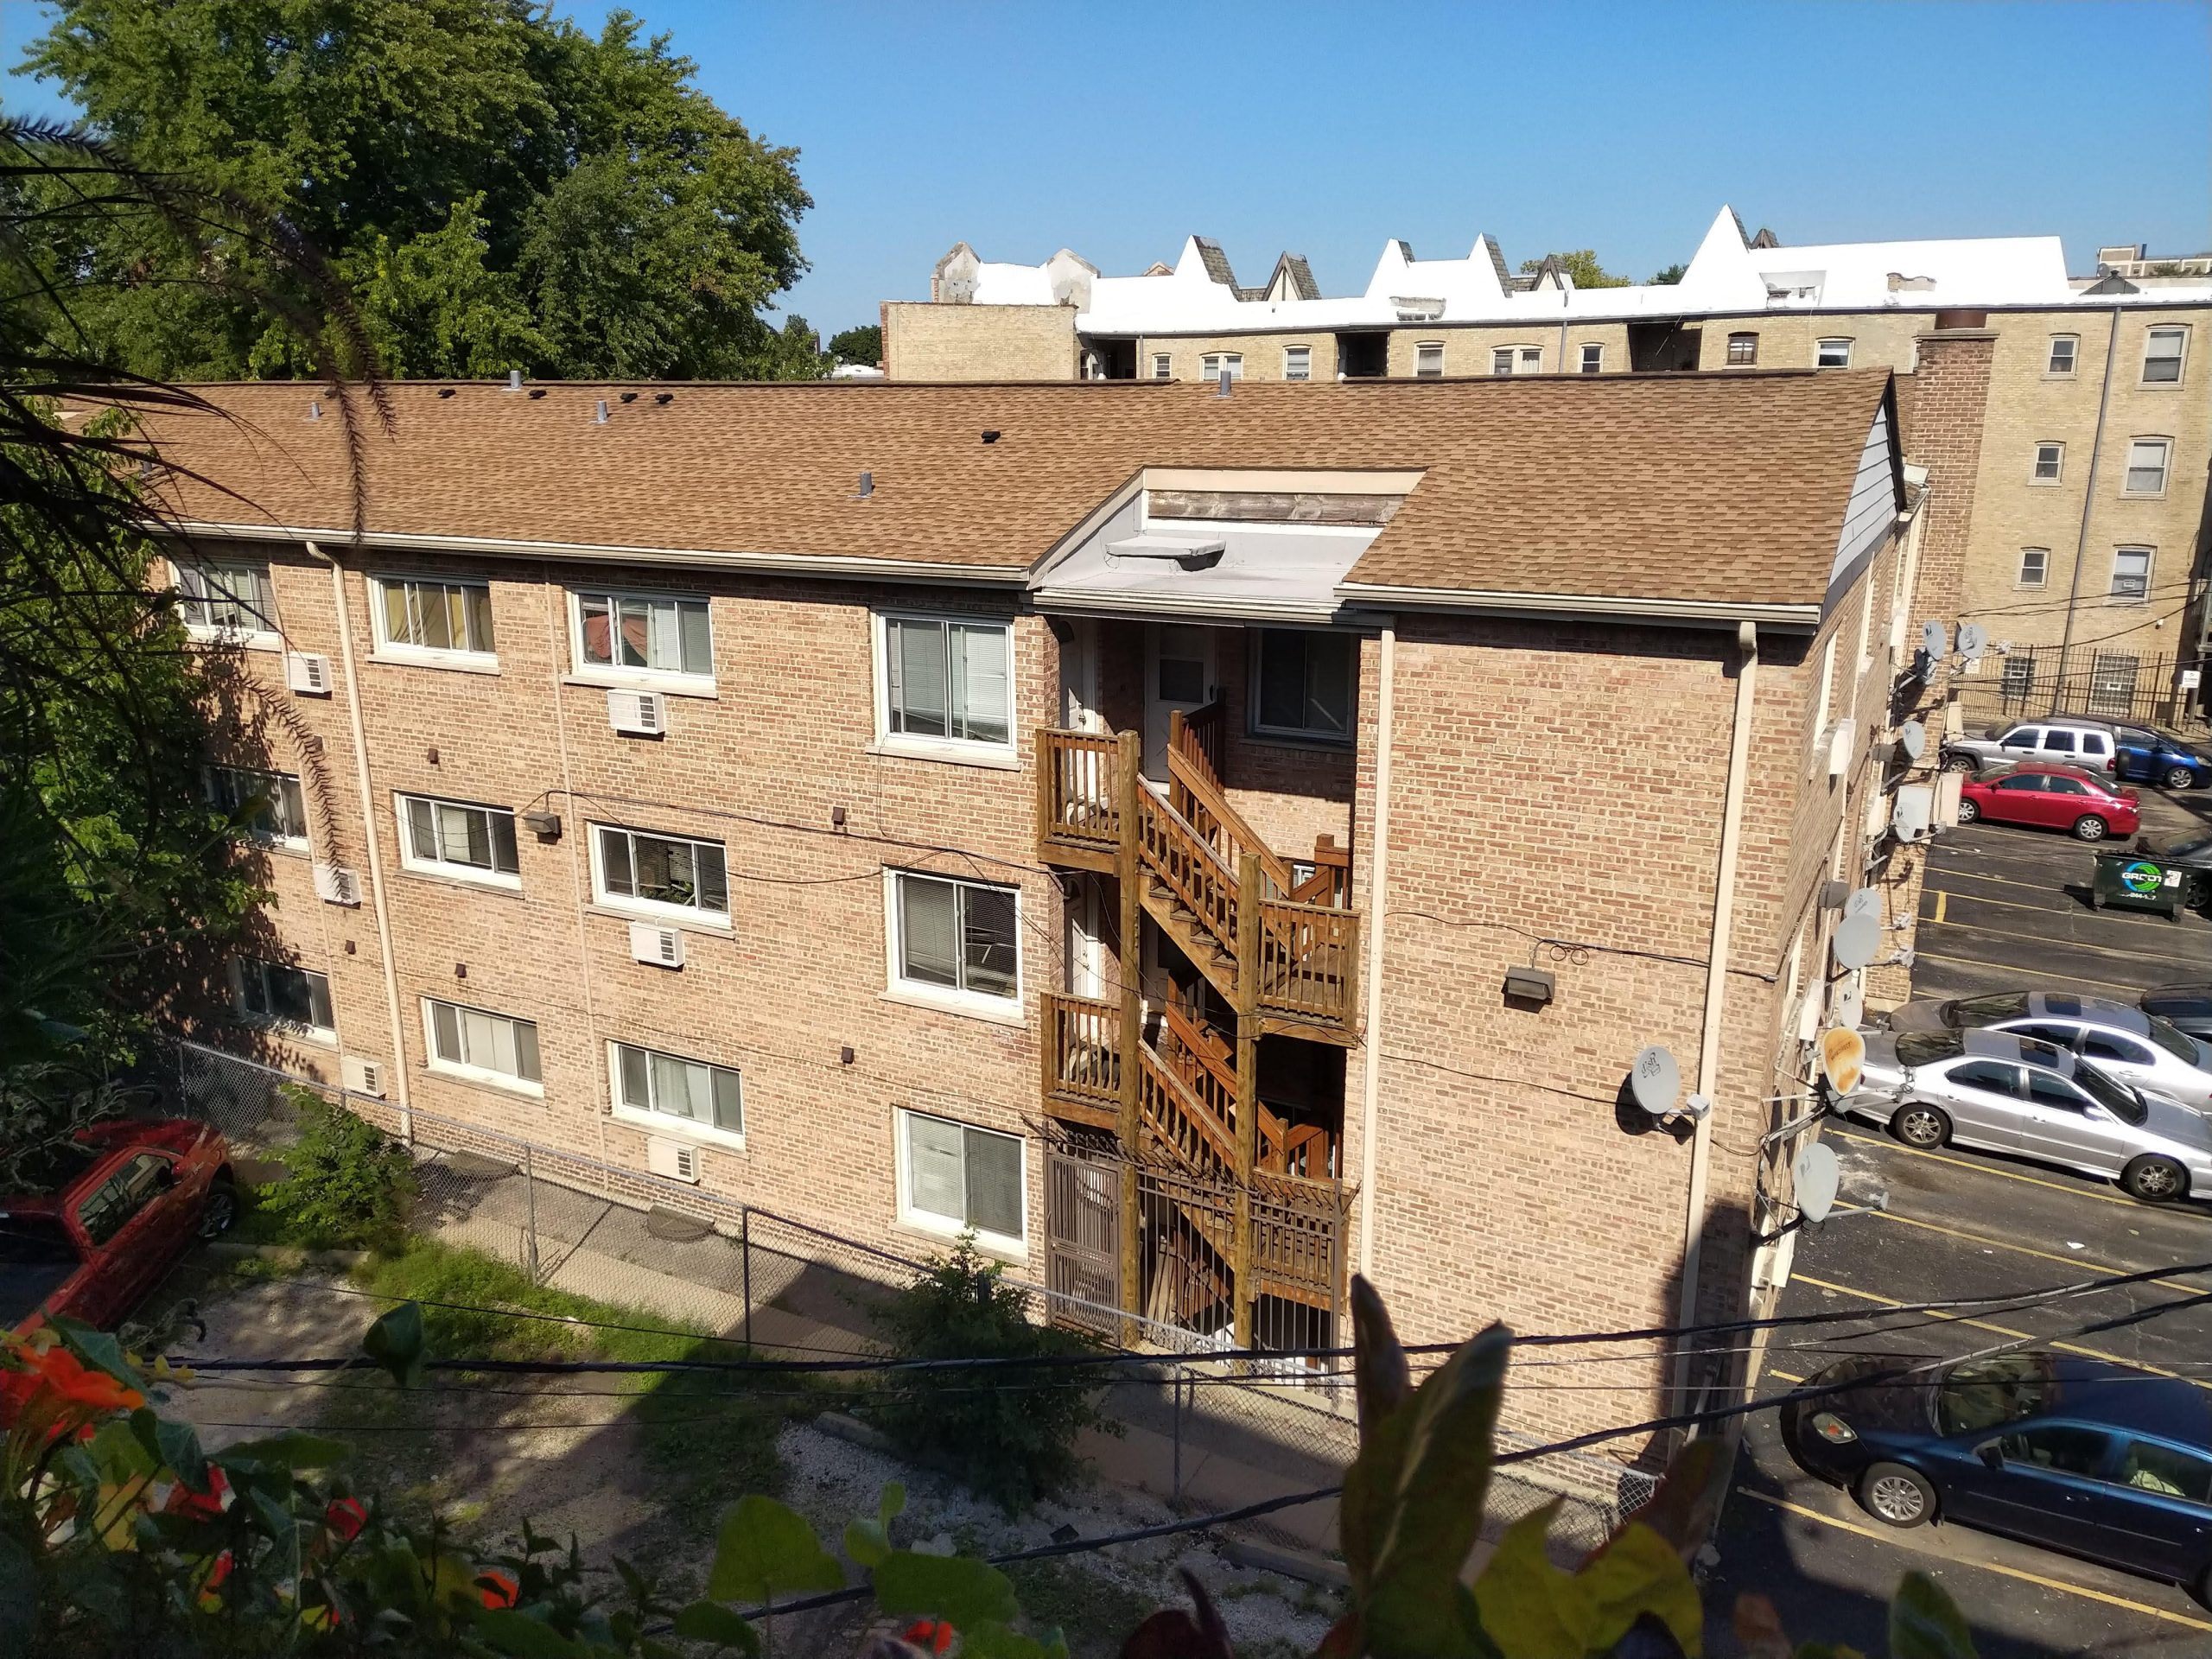 The Rogers Park apartment where Sam lives is owned by Greenspire, a company that bought up condo units at a bargain after the housing market collapsed.